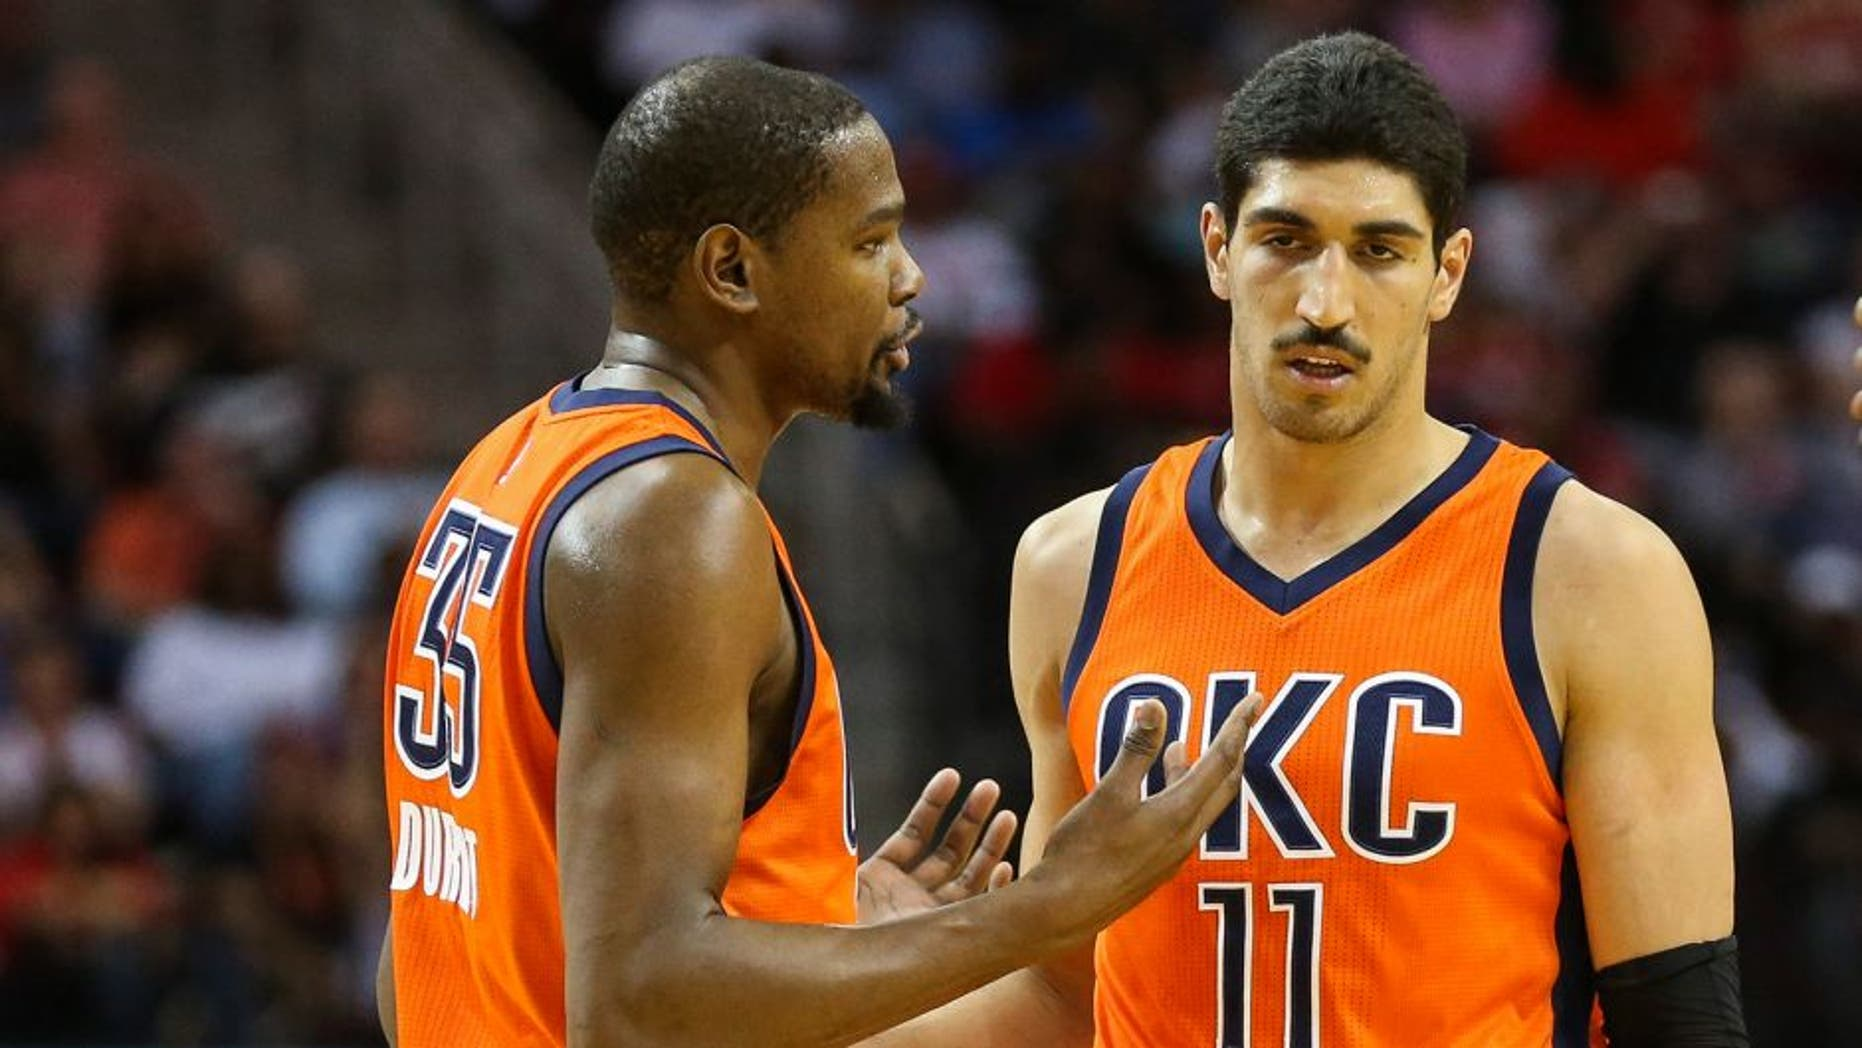 Apr 3, 2016; Houston, TX, USA; Oklahoma City Thunder forward Kevin Durant (35) talks with center Enes Kanter (11) and guard Randy Foye (6) during the second half against the Houston Rockets at Toyota Center. The Rockets won 118-110. Mandatory Credit: Troy Taormina-USA TODAY Sports